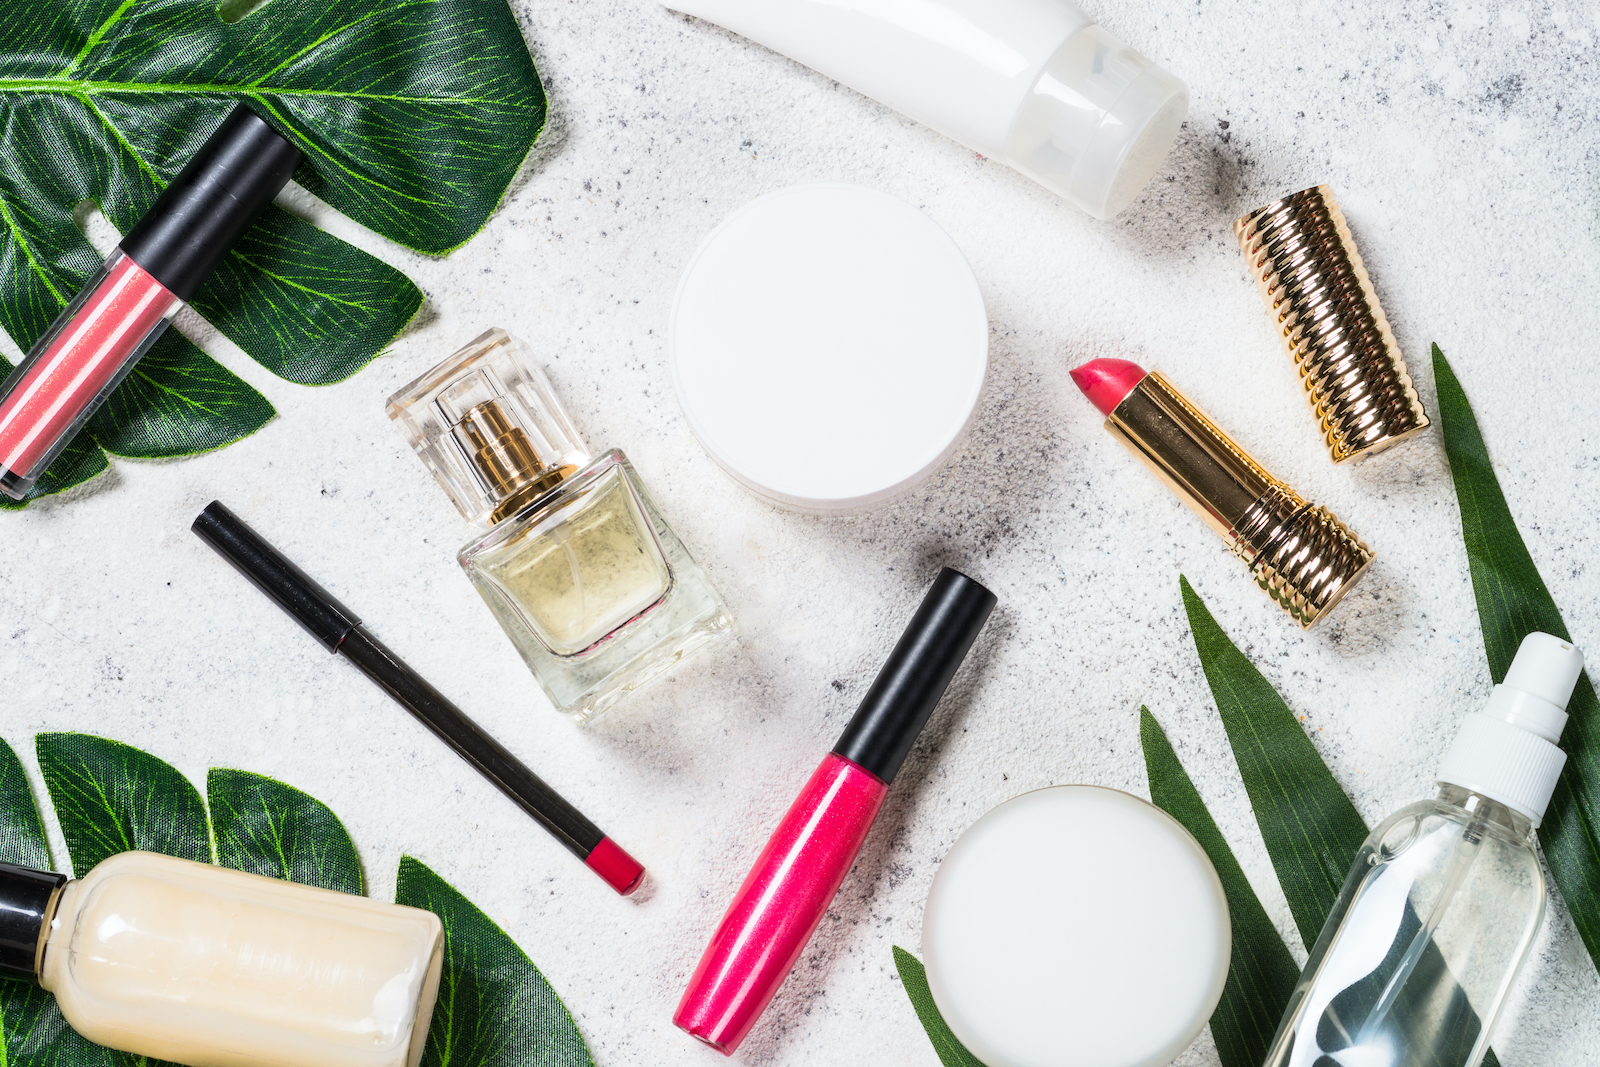 Cosmetic beauty products on white.